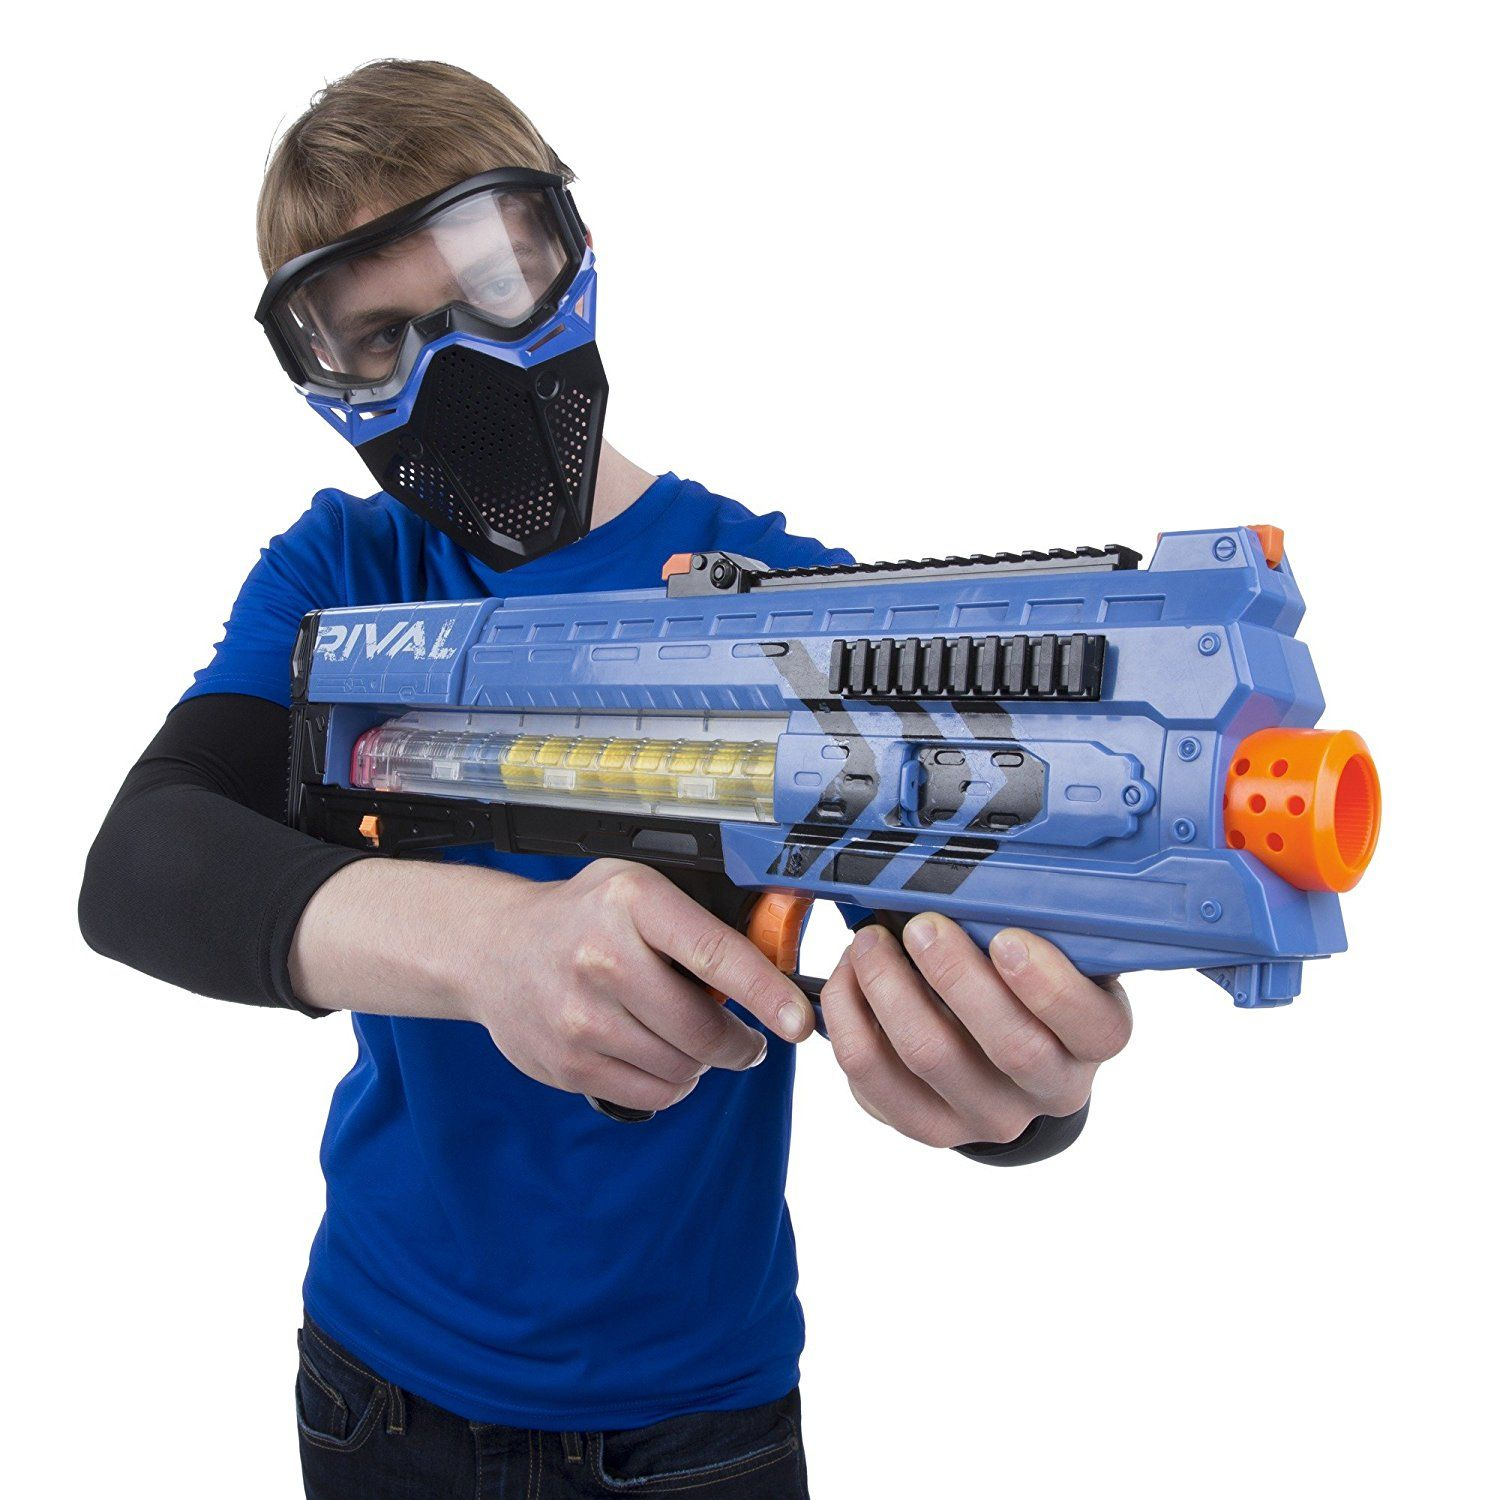 NERF RIVAL STAR WARS BATTLEFRONT APOLLO XV-700 Blaster and Face Mask set